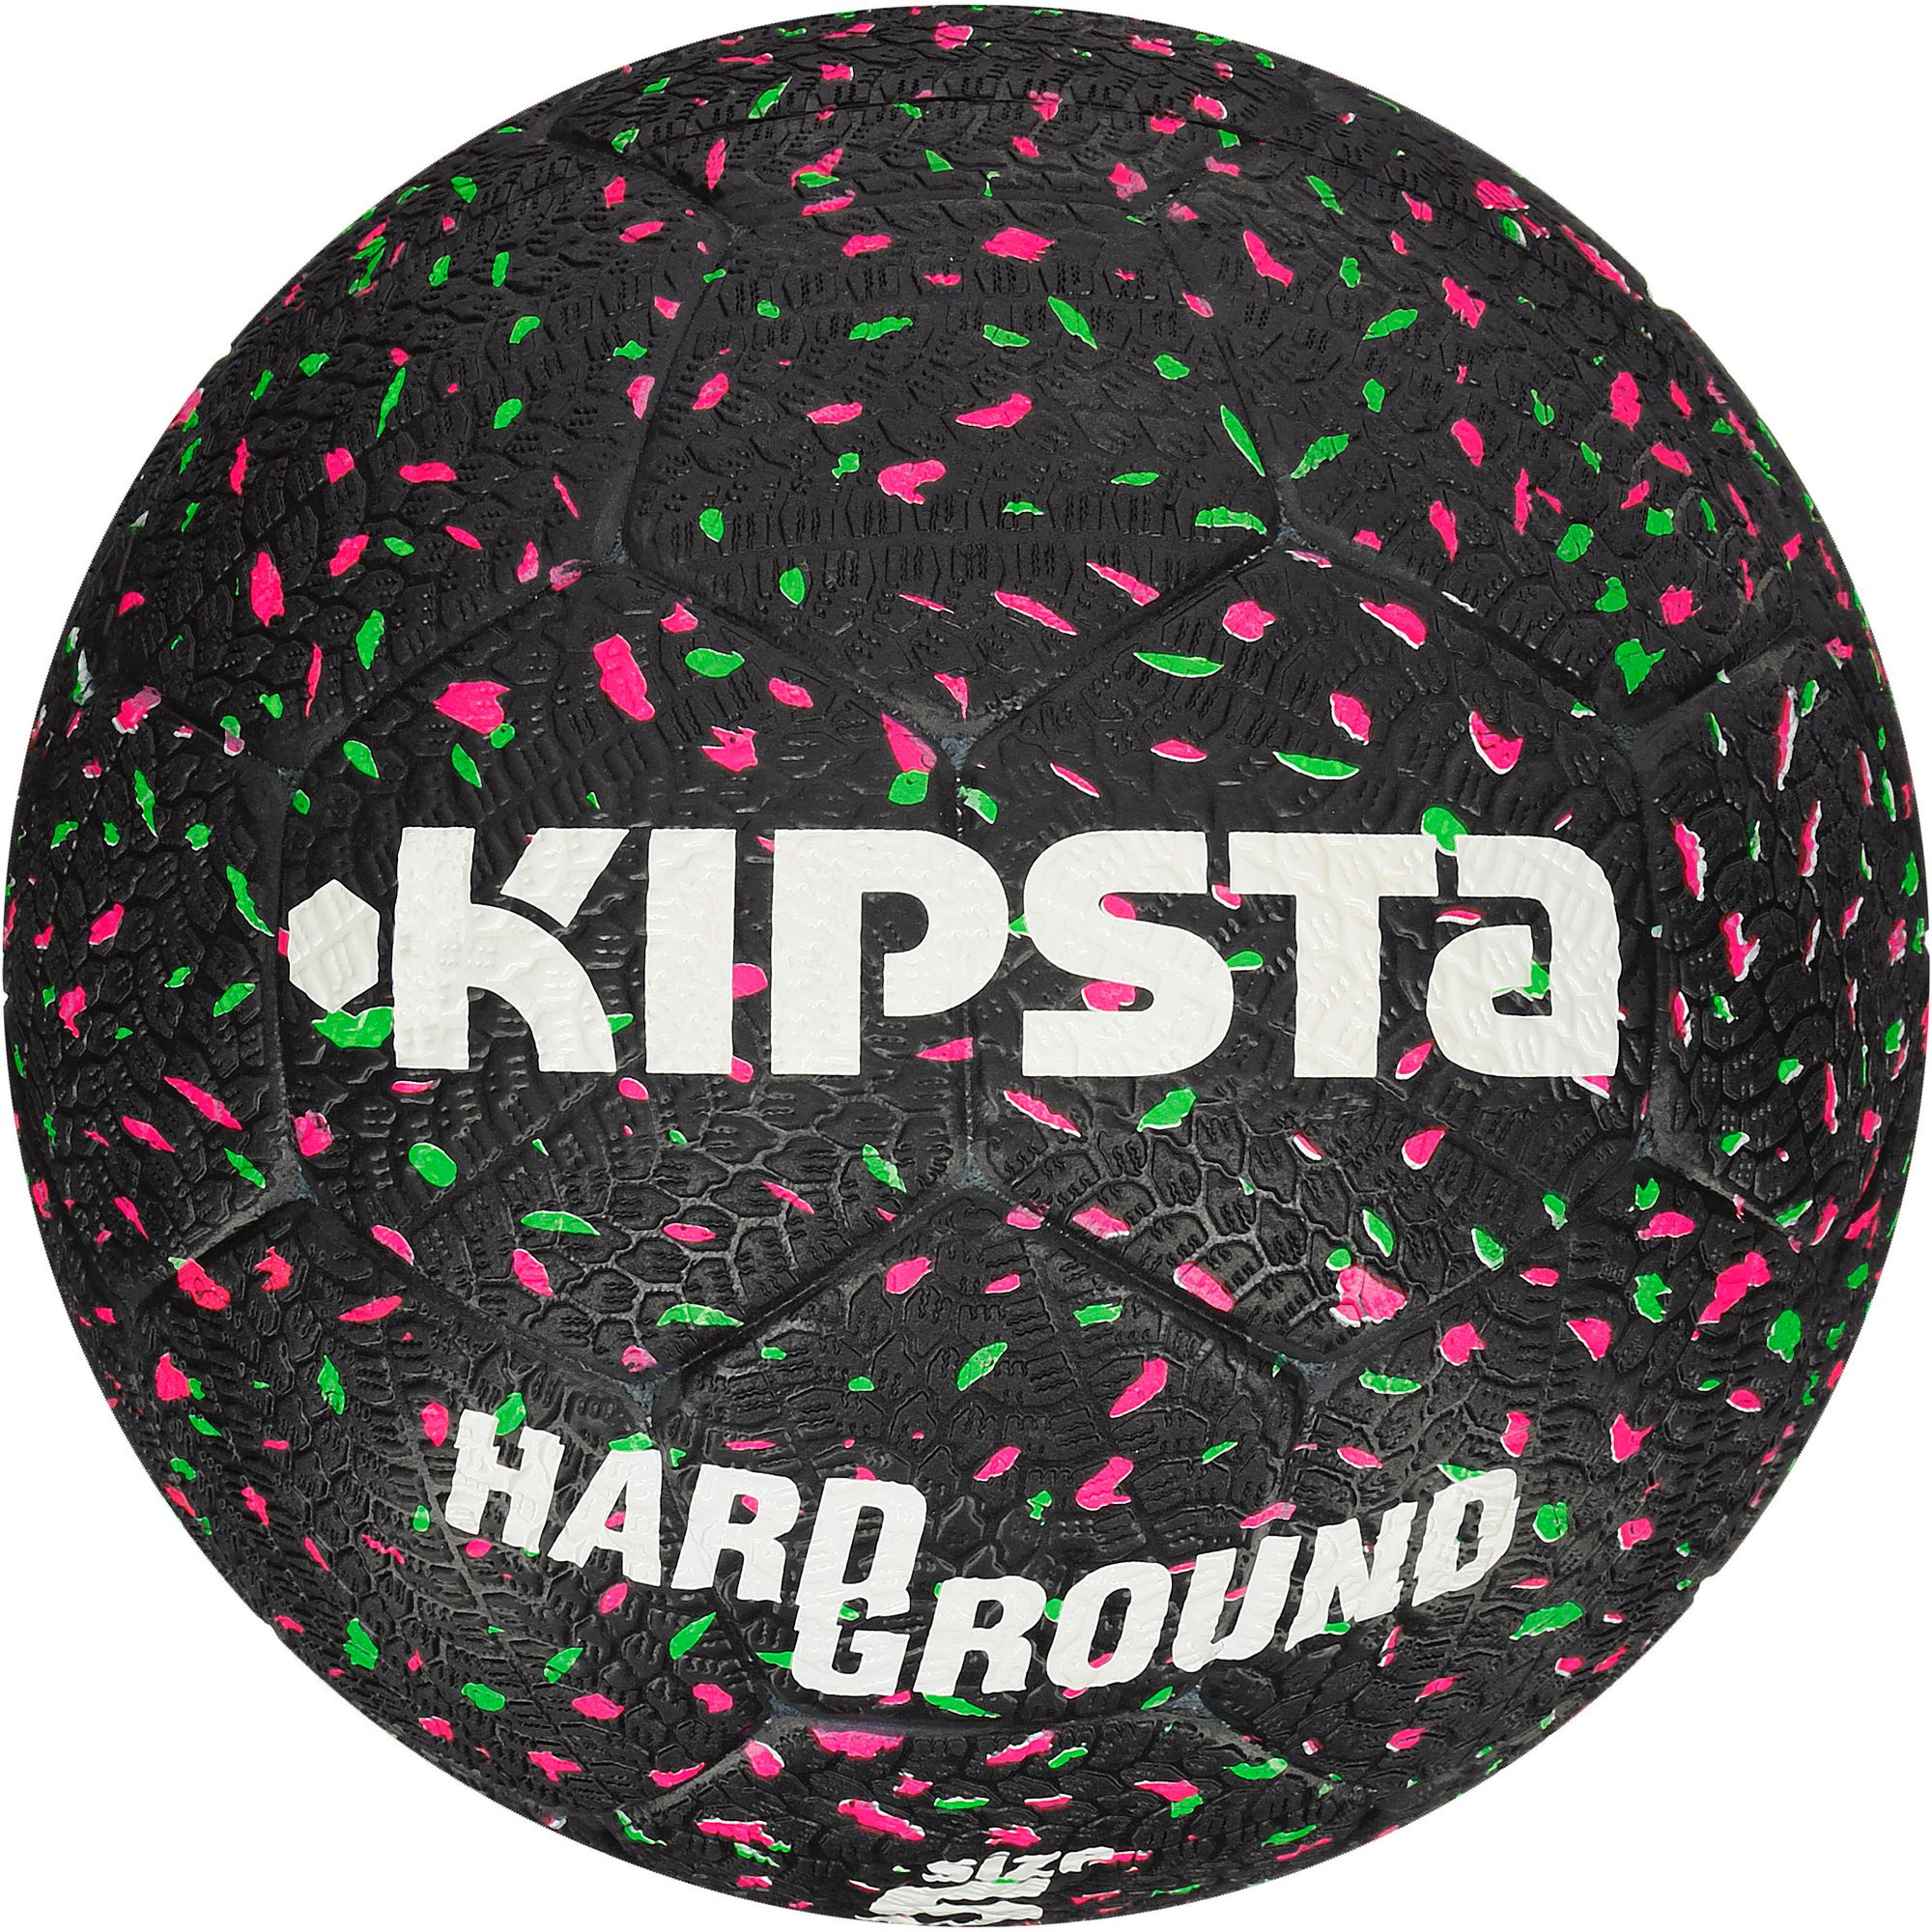 Ballon football Hardground taille 5 noir vert rose